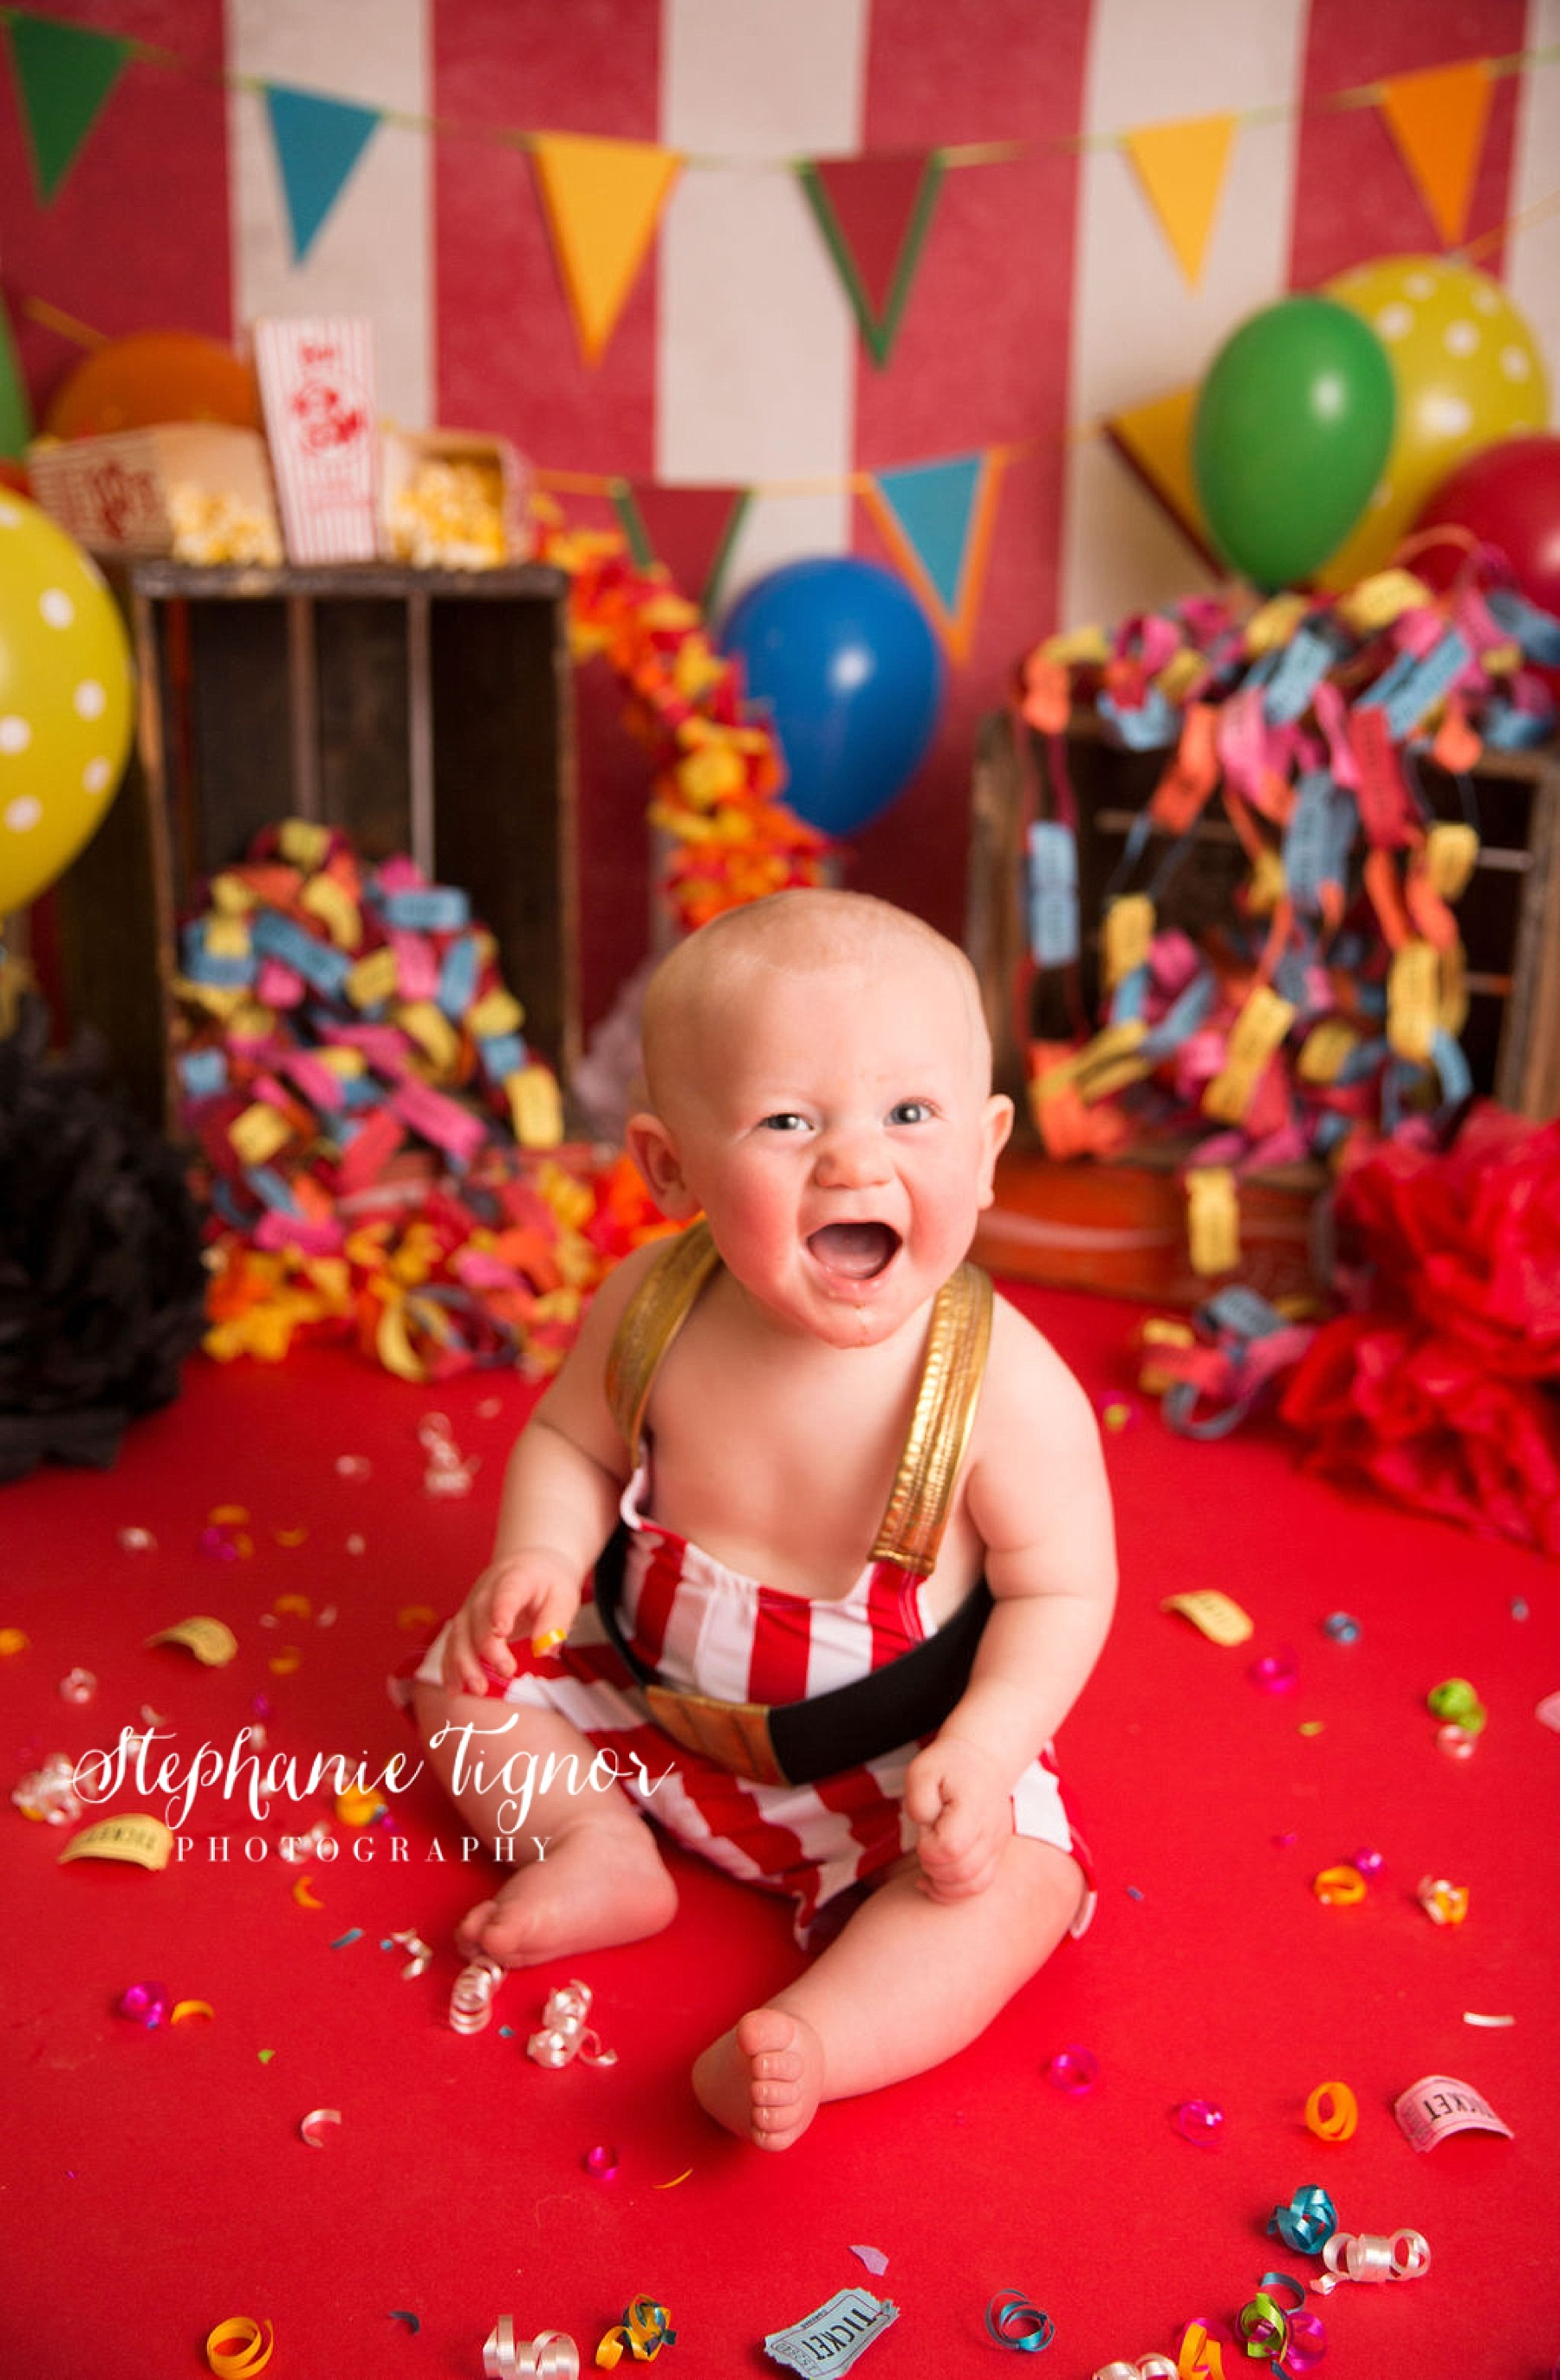 Stephanie Tignor Photography | Fredericksburg VA Cake Smash Photographer | Warrenton VA Cake Smash Photographer | Stafford VA Cake Smash Photographer | Cake Smash Photographer, Carnival cake smash, Carnival inspired, first birthday, first birthday photos, cake smash session